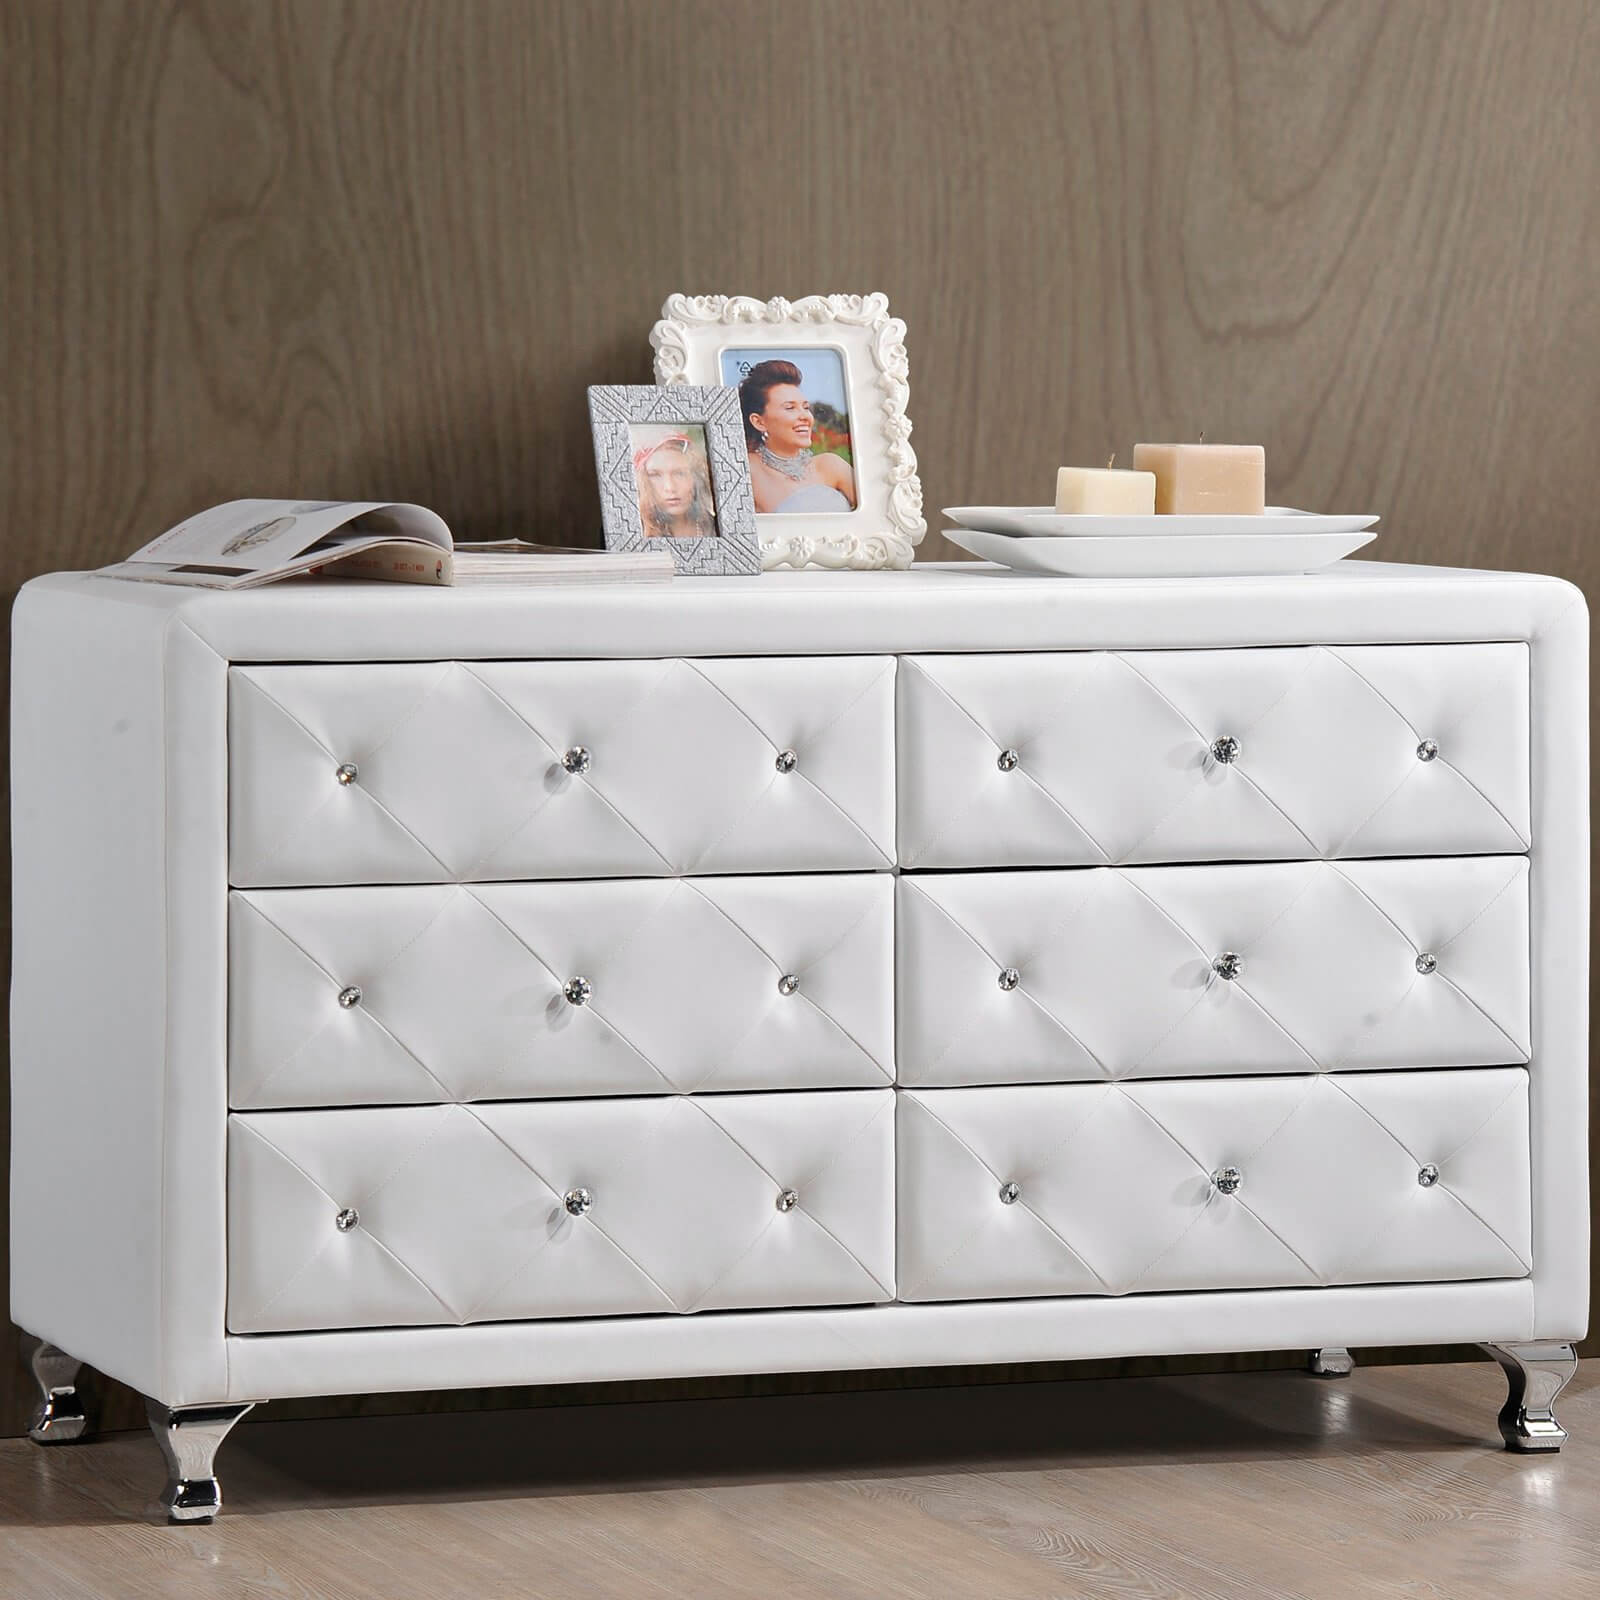 While the framework of the dresser itself is built from wood, some pieces boast a fully leather surface, for a rich, textural look. This example features button tufted drawers in white leather upholstery.